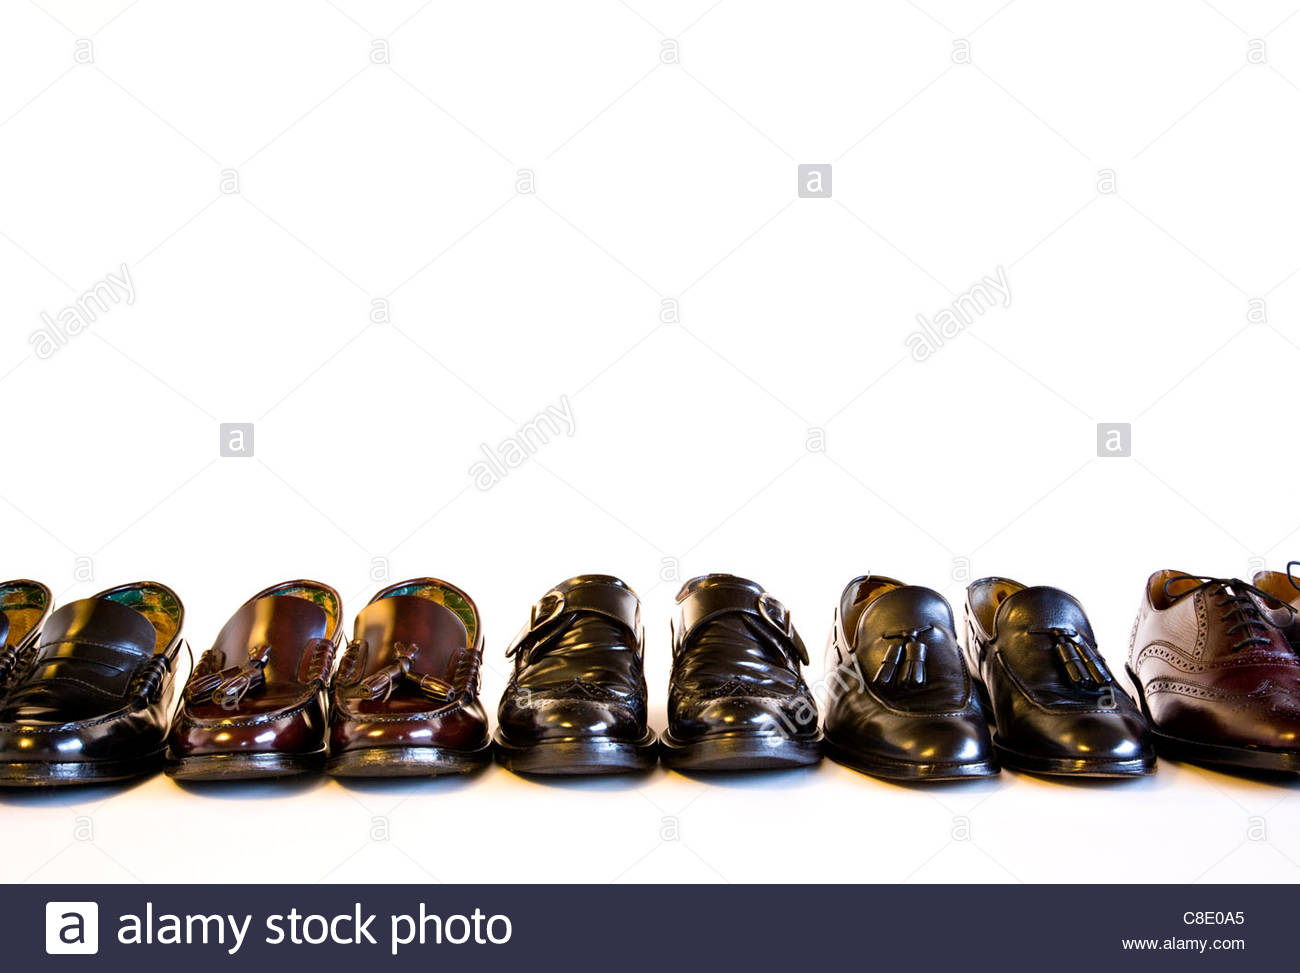 Selection of Men's well worn black and brown leather shoes on white background - Stock Image